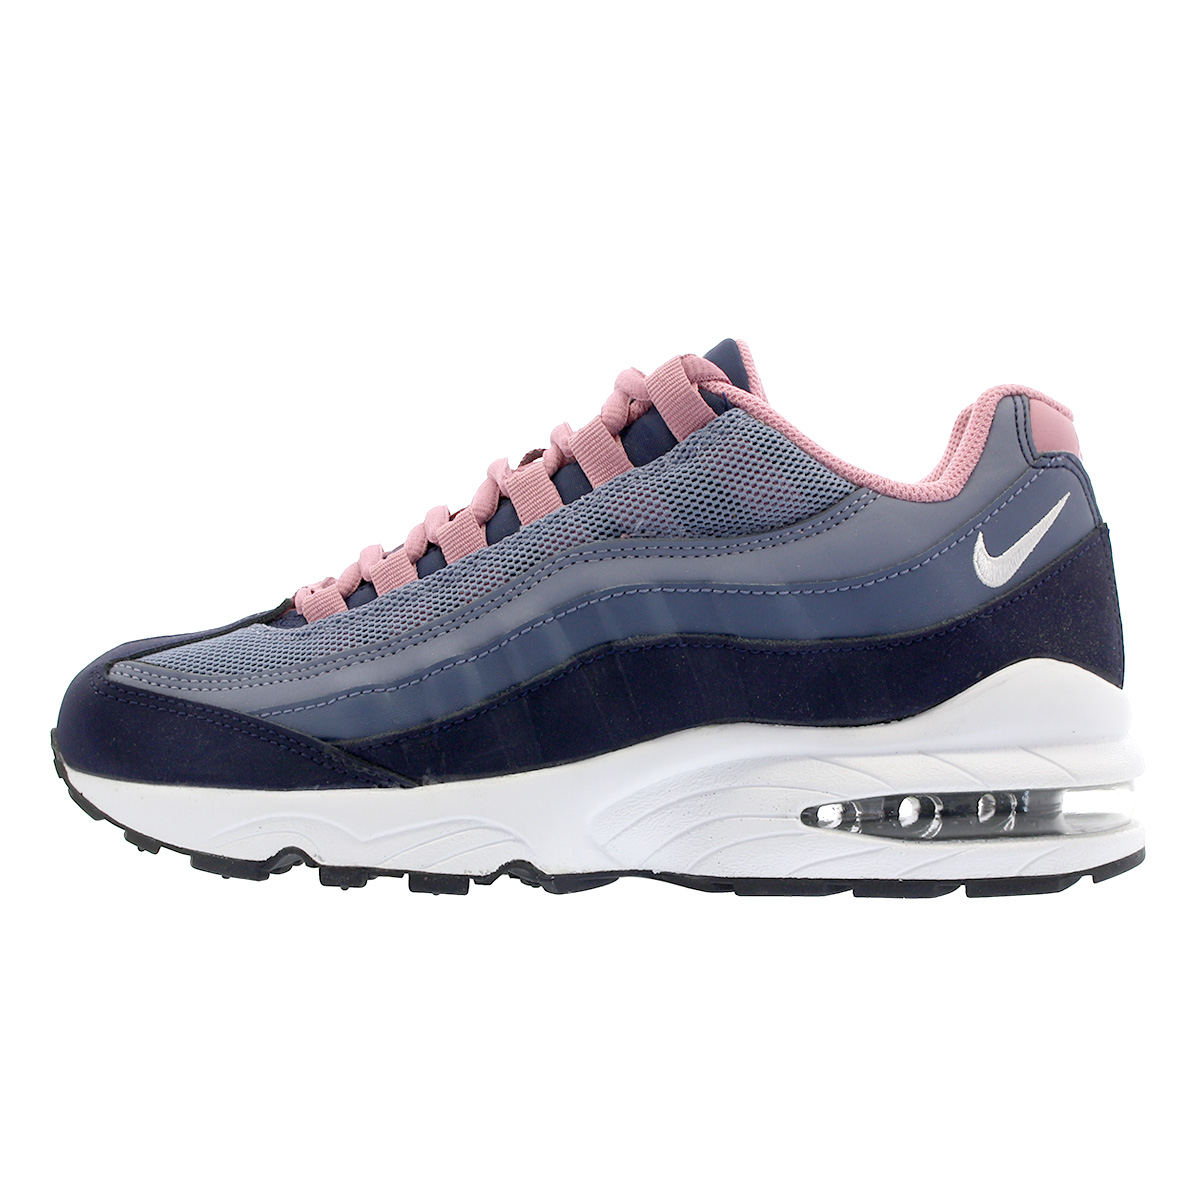 best service 9b8c4 42368 ... low cost nike air max 95 le gs kie ney amax 95 leather gs navy blue